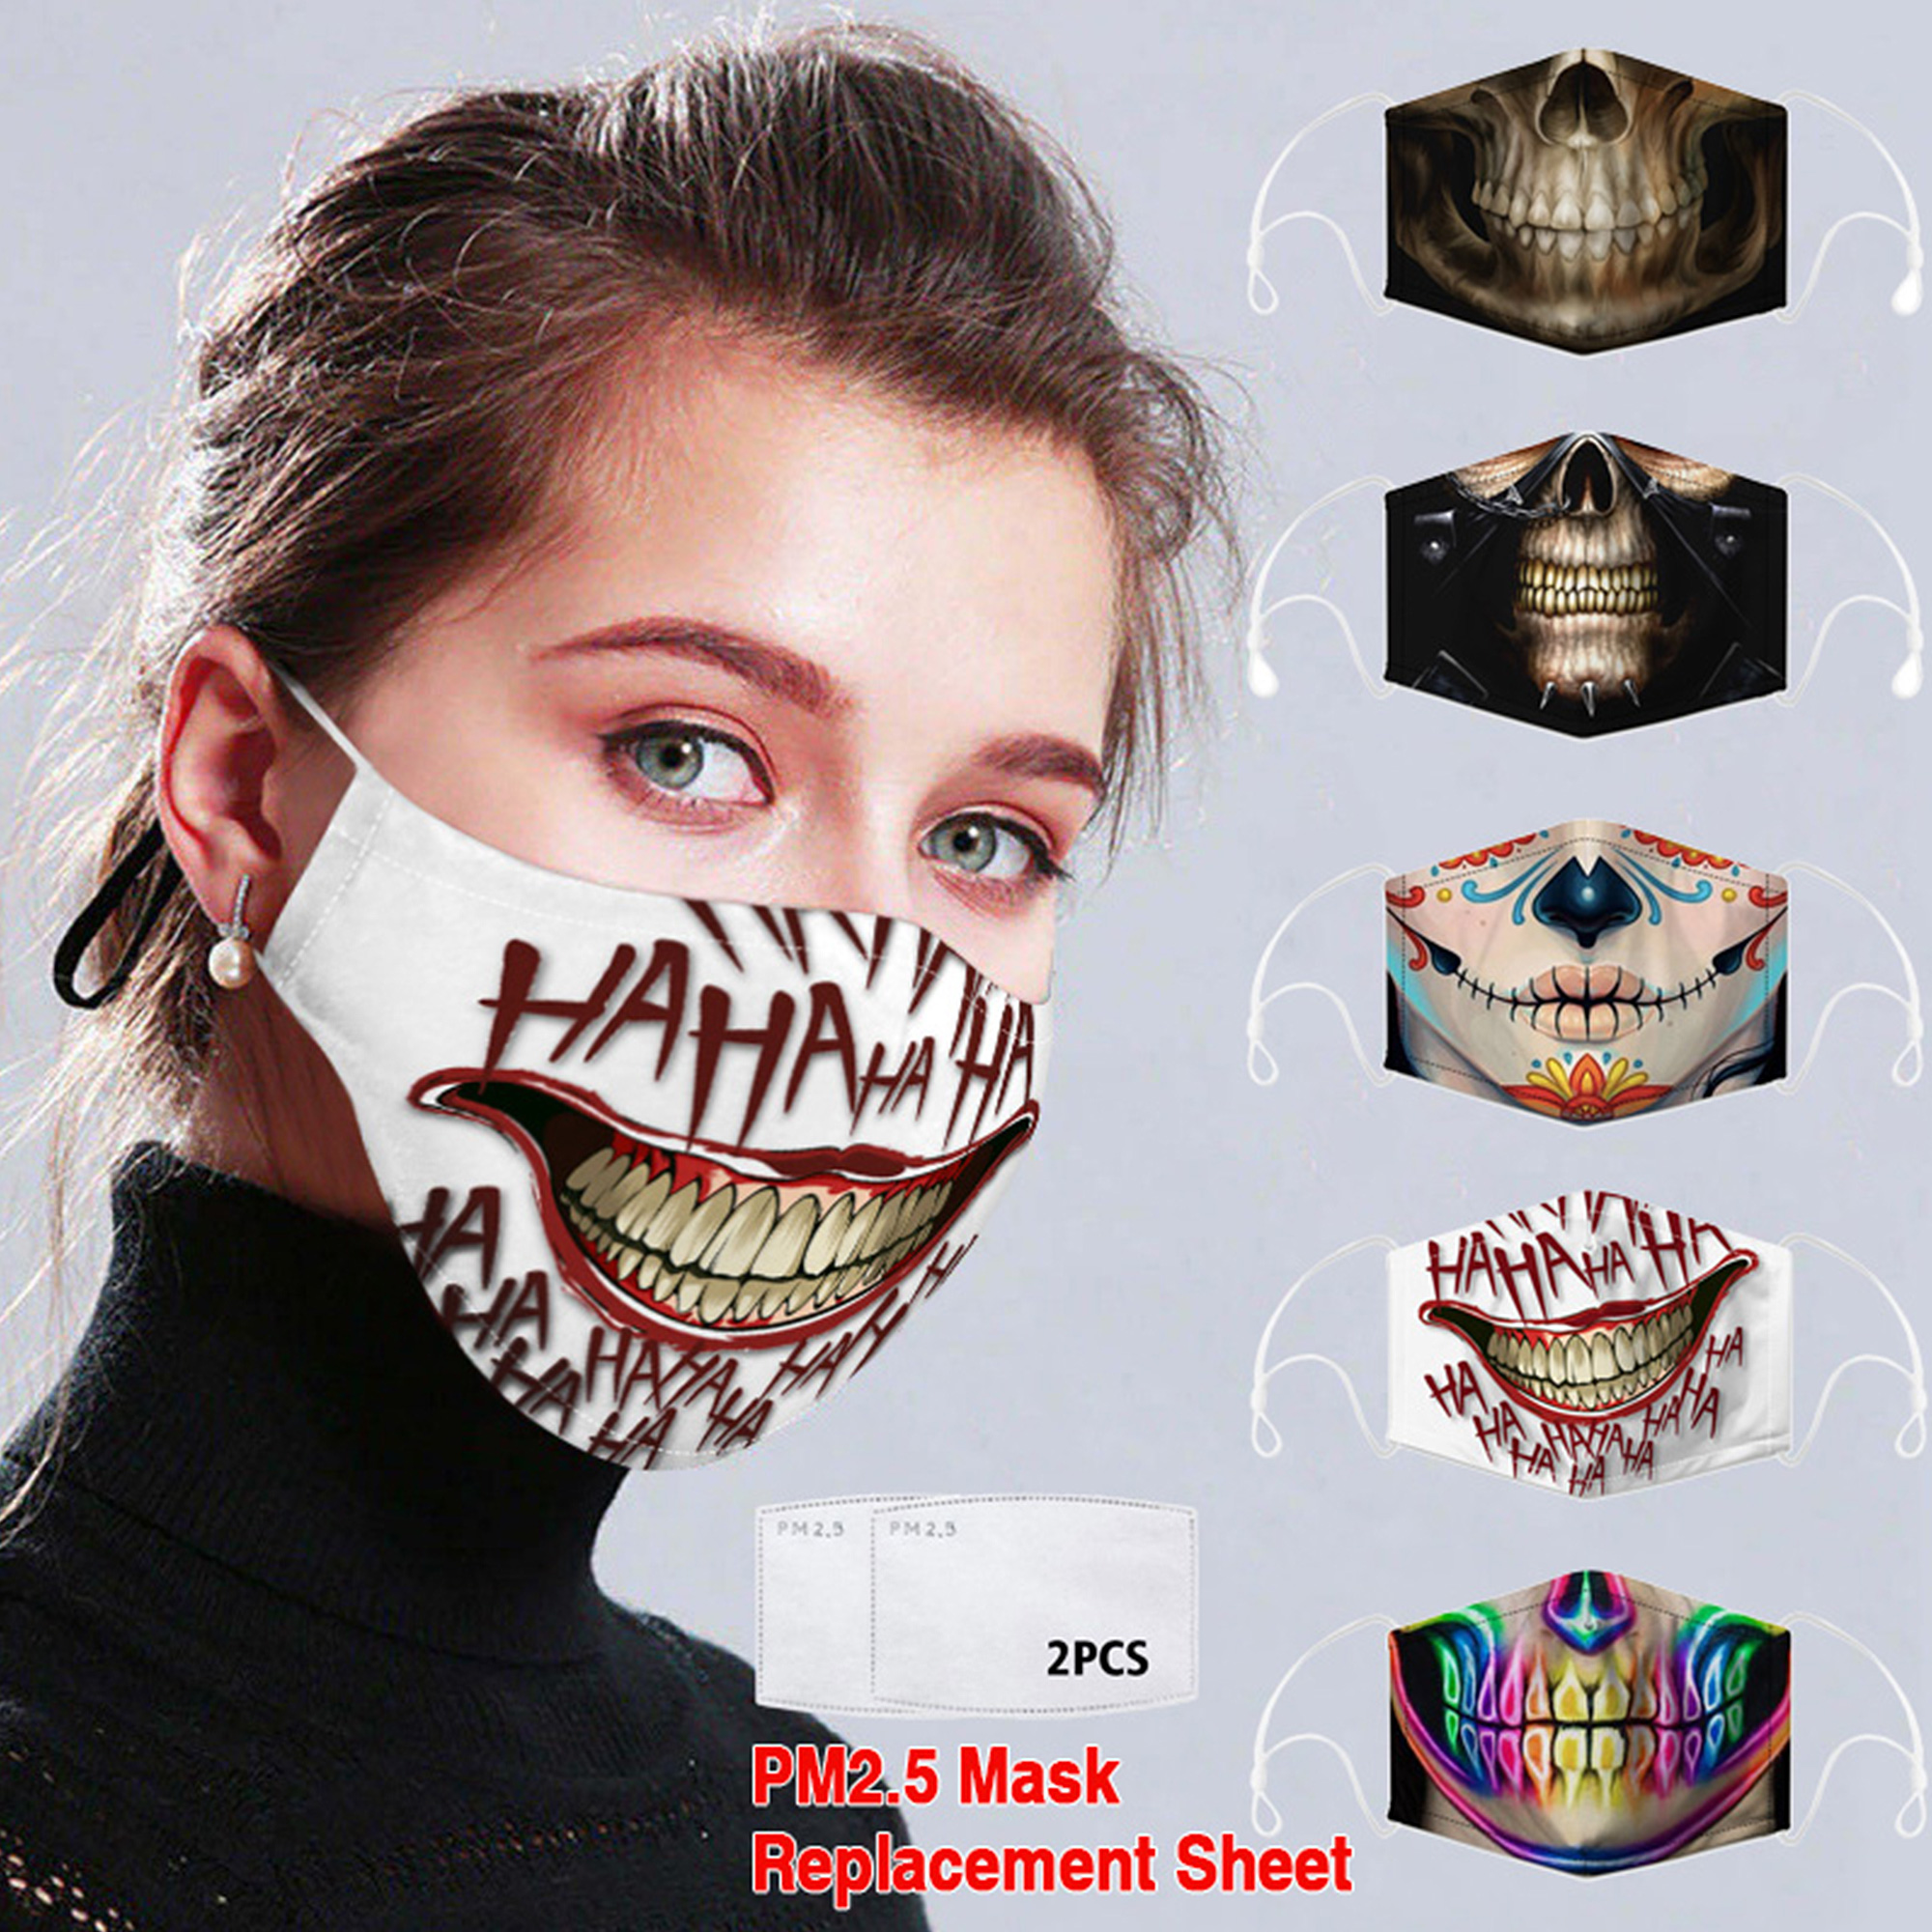 Cuh 1 2 5 Pcs Women Man Mouth Covering Fashion Clothing Washable Reasuable Breathable Stretchable Outdoor Sport Run Protection For Adult Childs Walmart Com Walmart Com